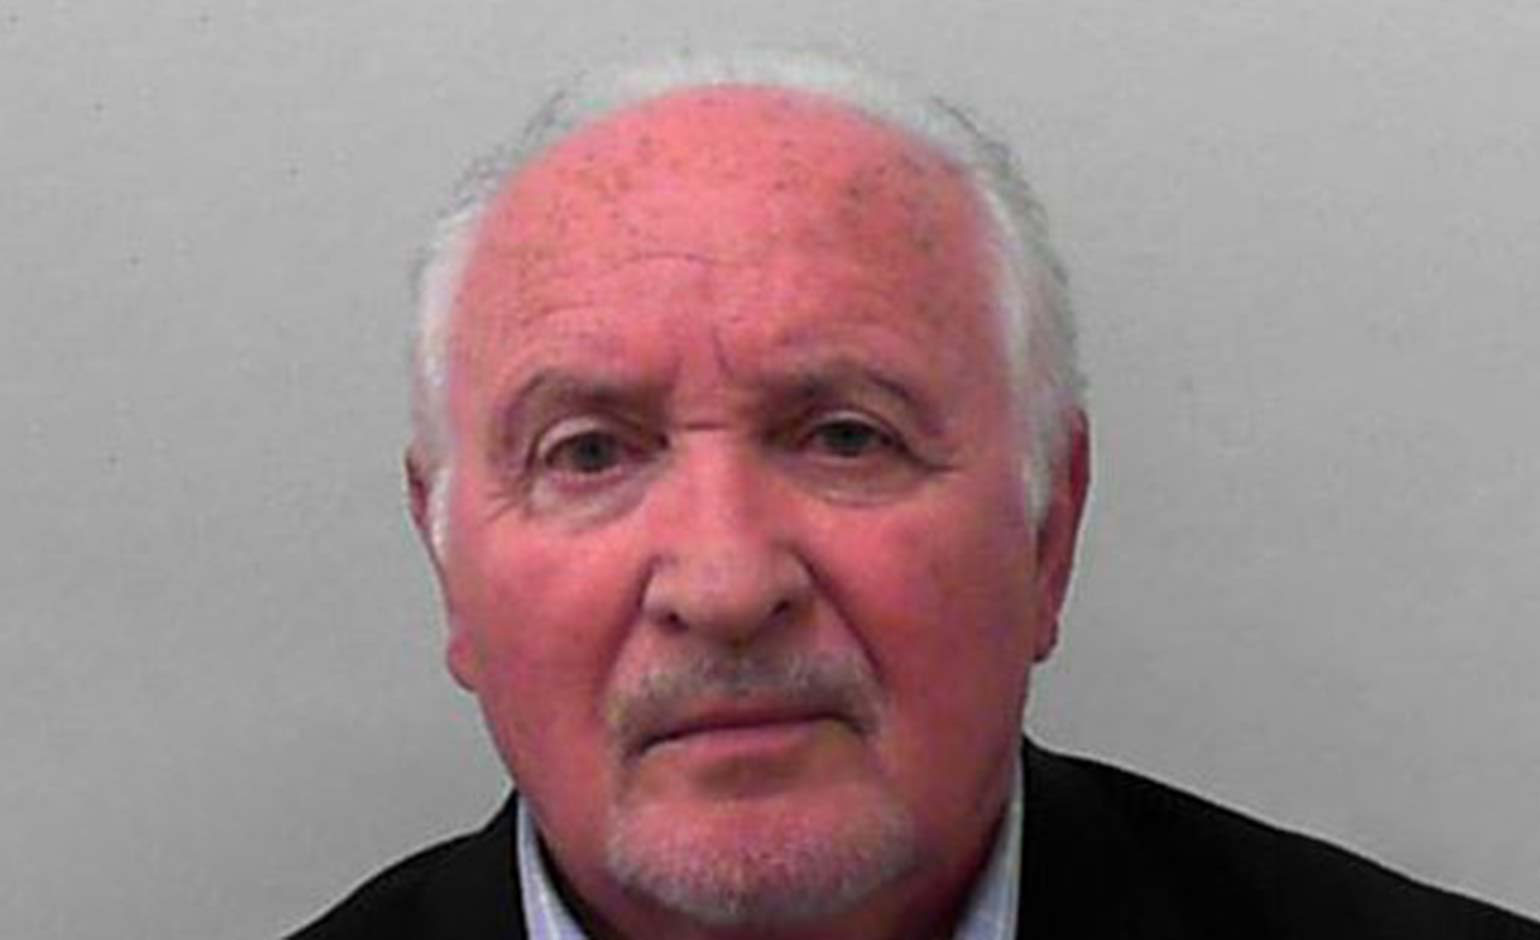 Local financial adviser jailed after stealing £50,000 from disabled woman